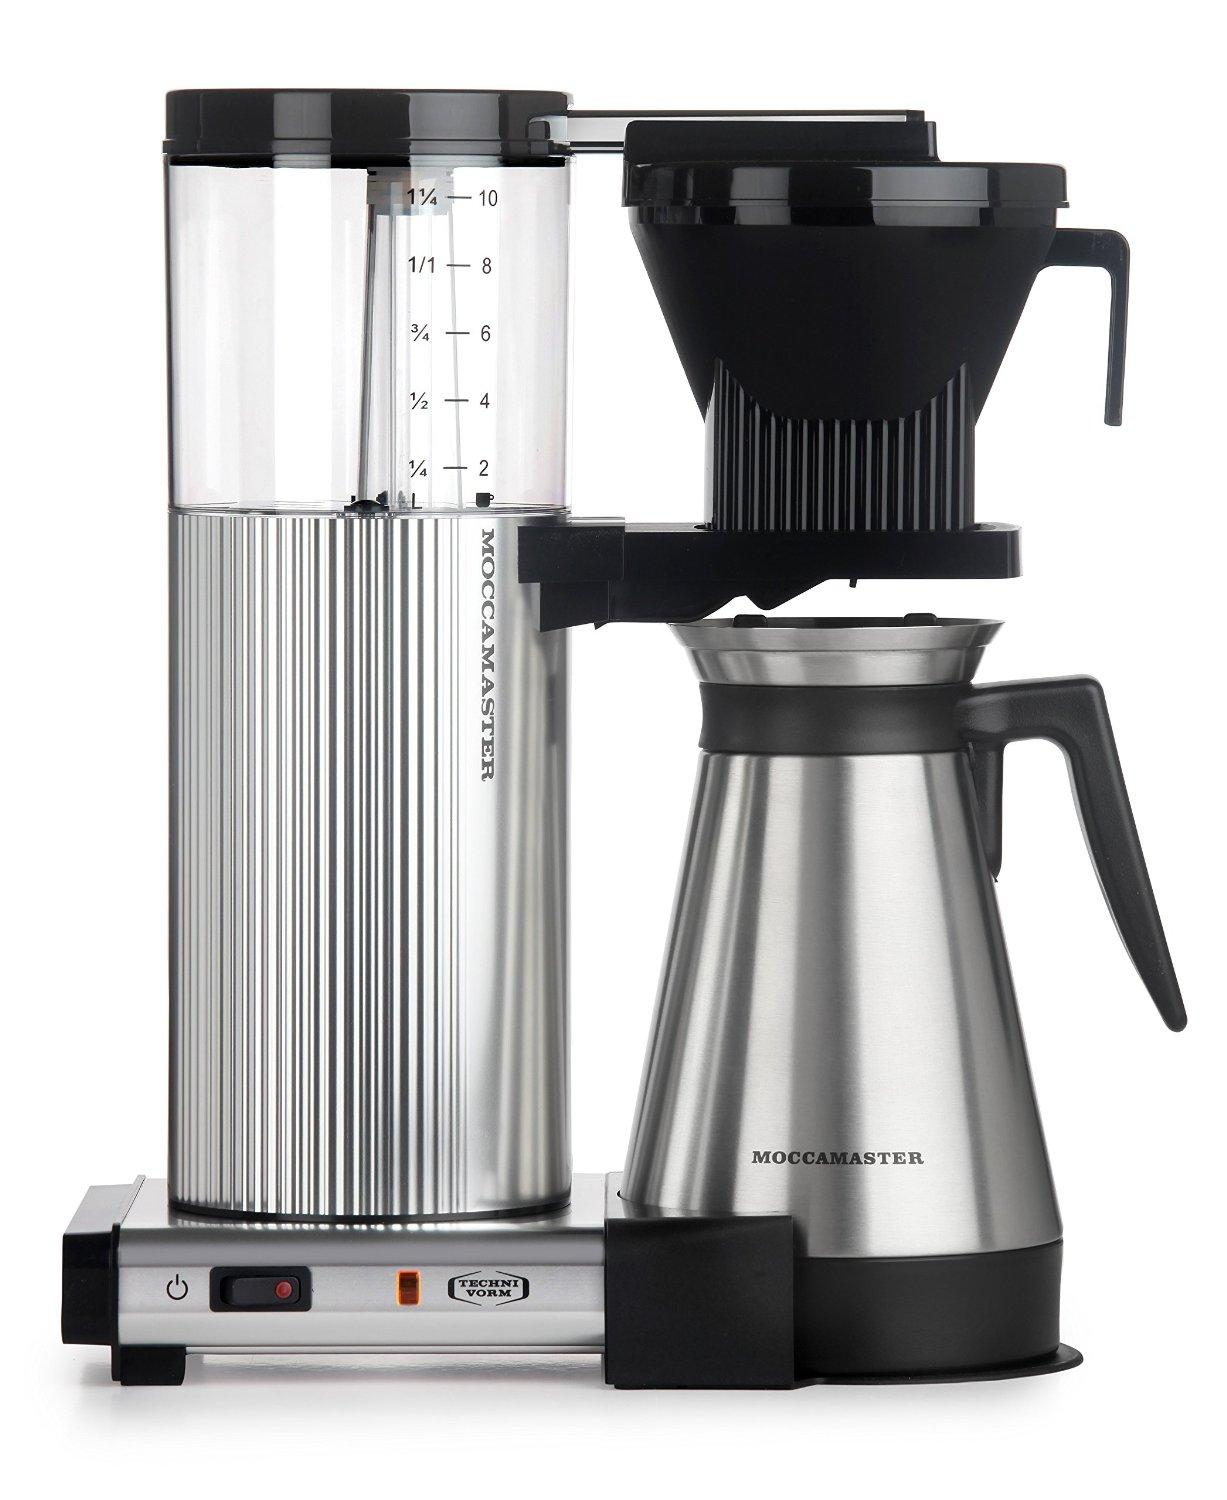 Amazon Com Technivorm Moccamaster 89912 Coffee Machines